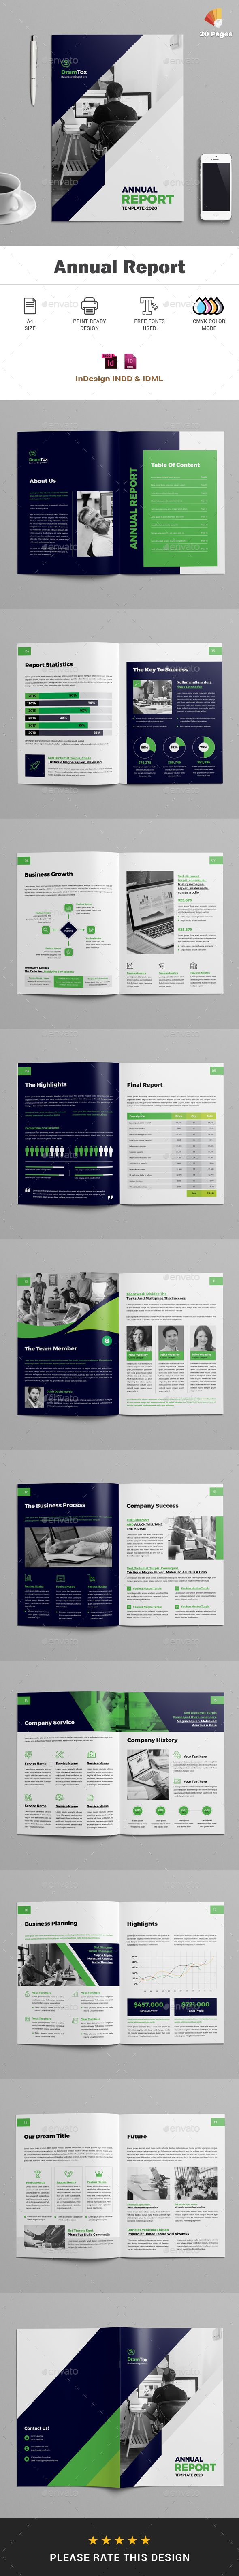 Annual Report #corporate #brand #brandmanual #brandboook #corporatebrochure #brochure #companyprofile #annualreport #brochuredesign #printtemplate #companybrochure #company #multipurpose #design #brandtemplate #annualreports